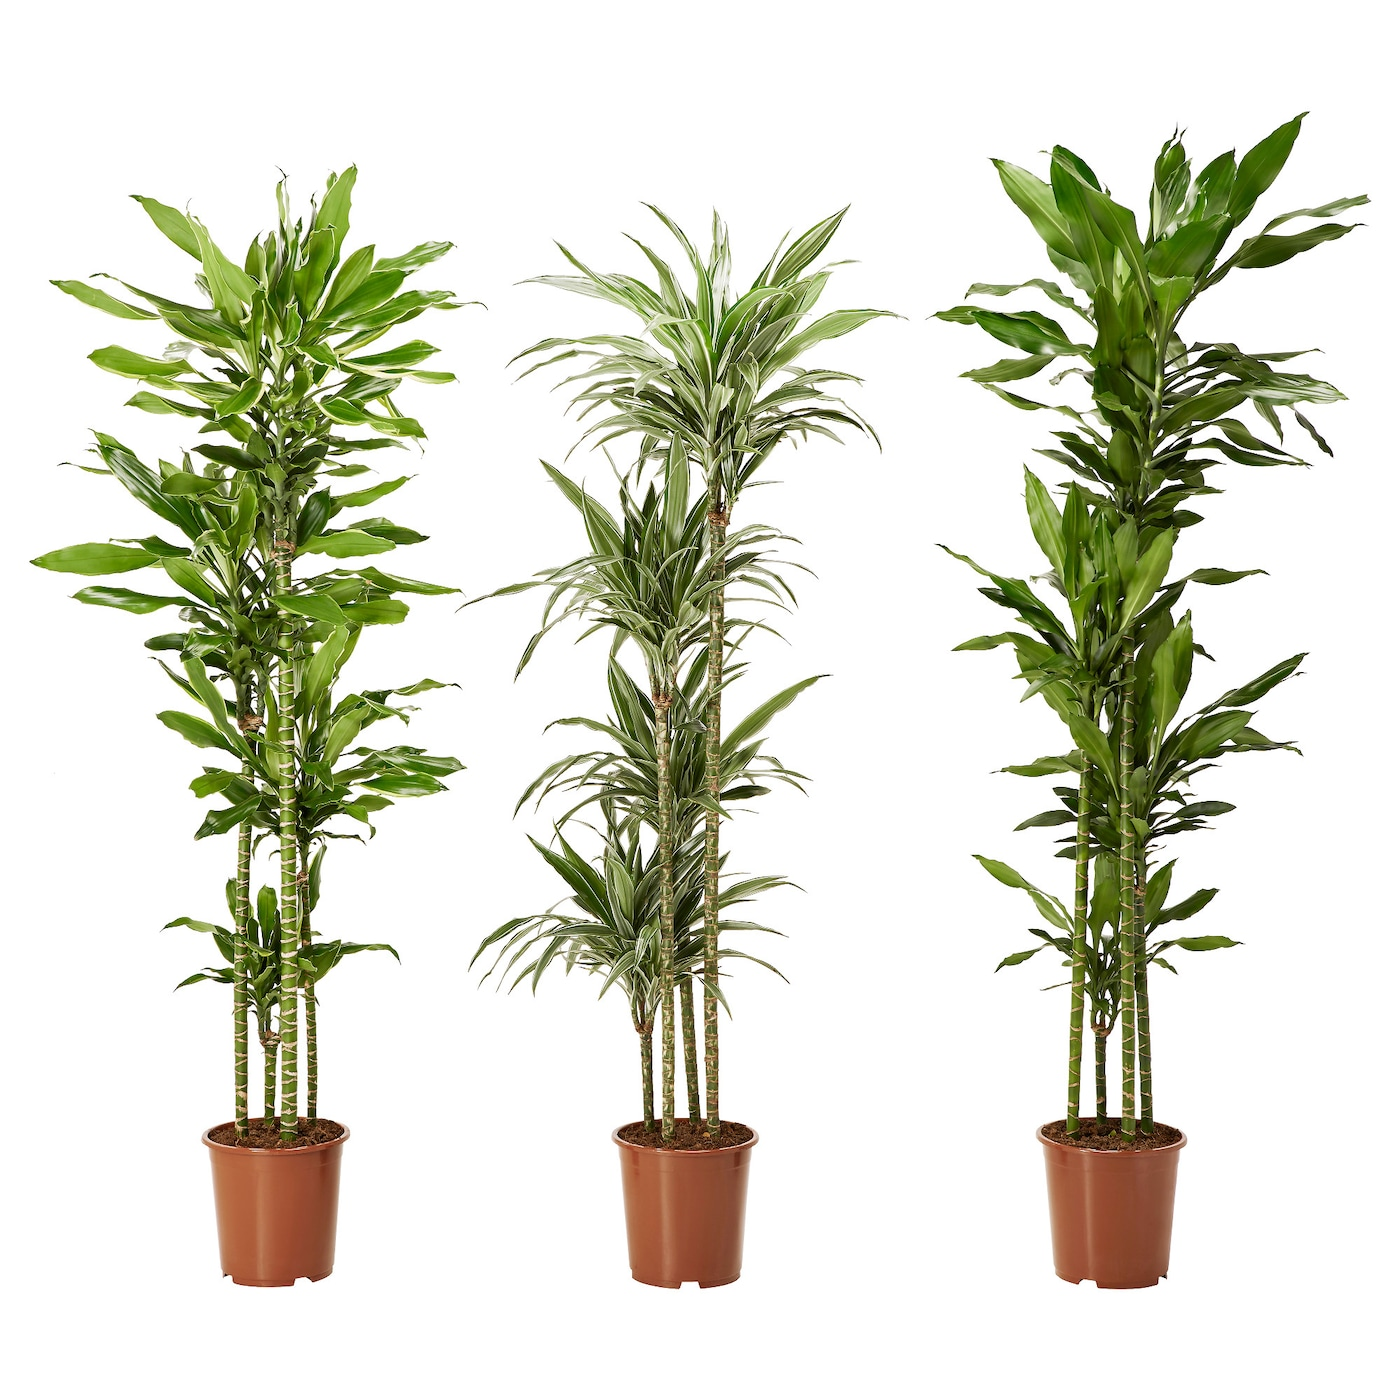 dracaena deremensis plante en pot diverses esp ces 27 cm. Black Bedroom Furniture Sets. Home Design Ideas